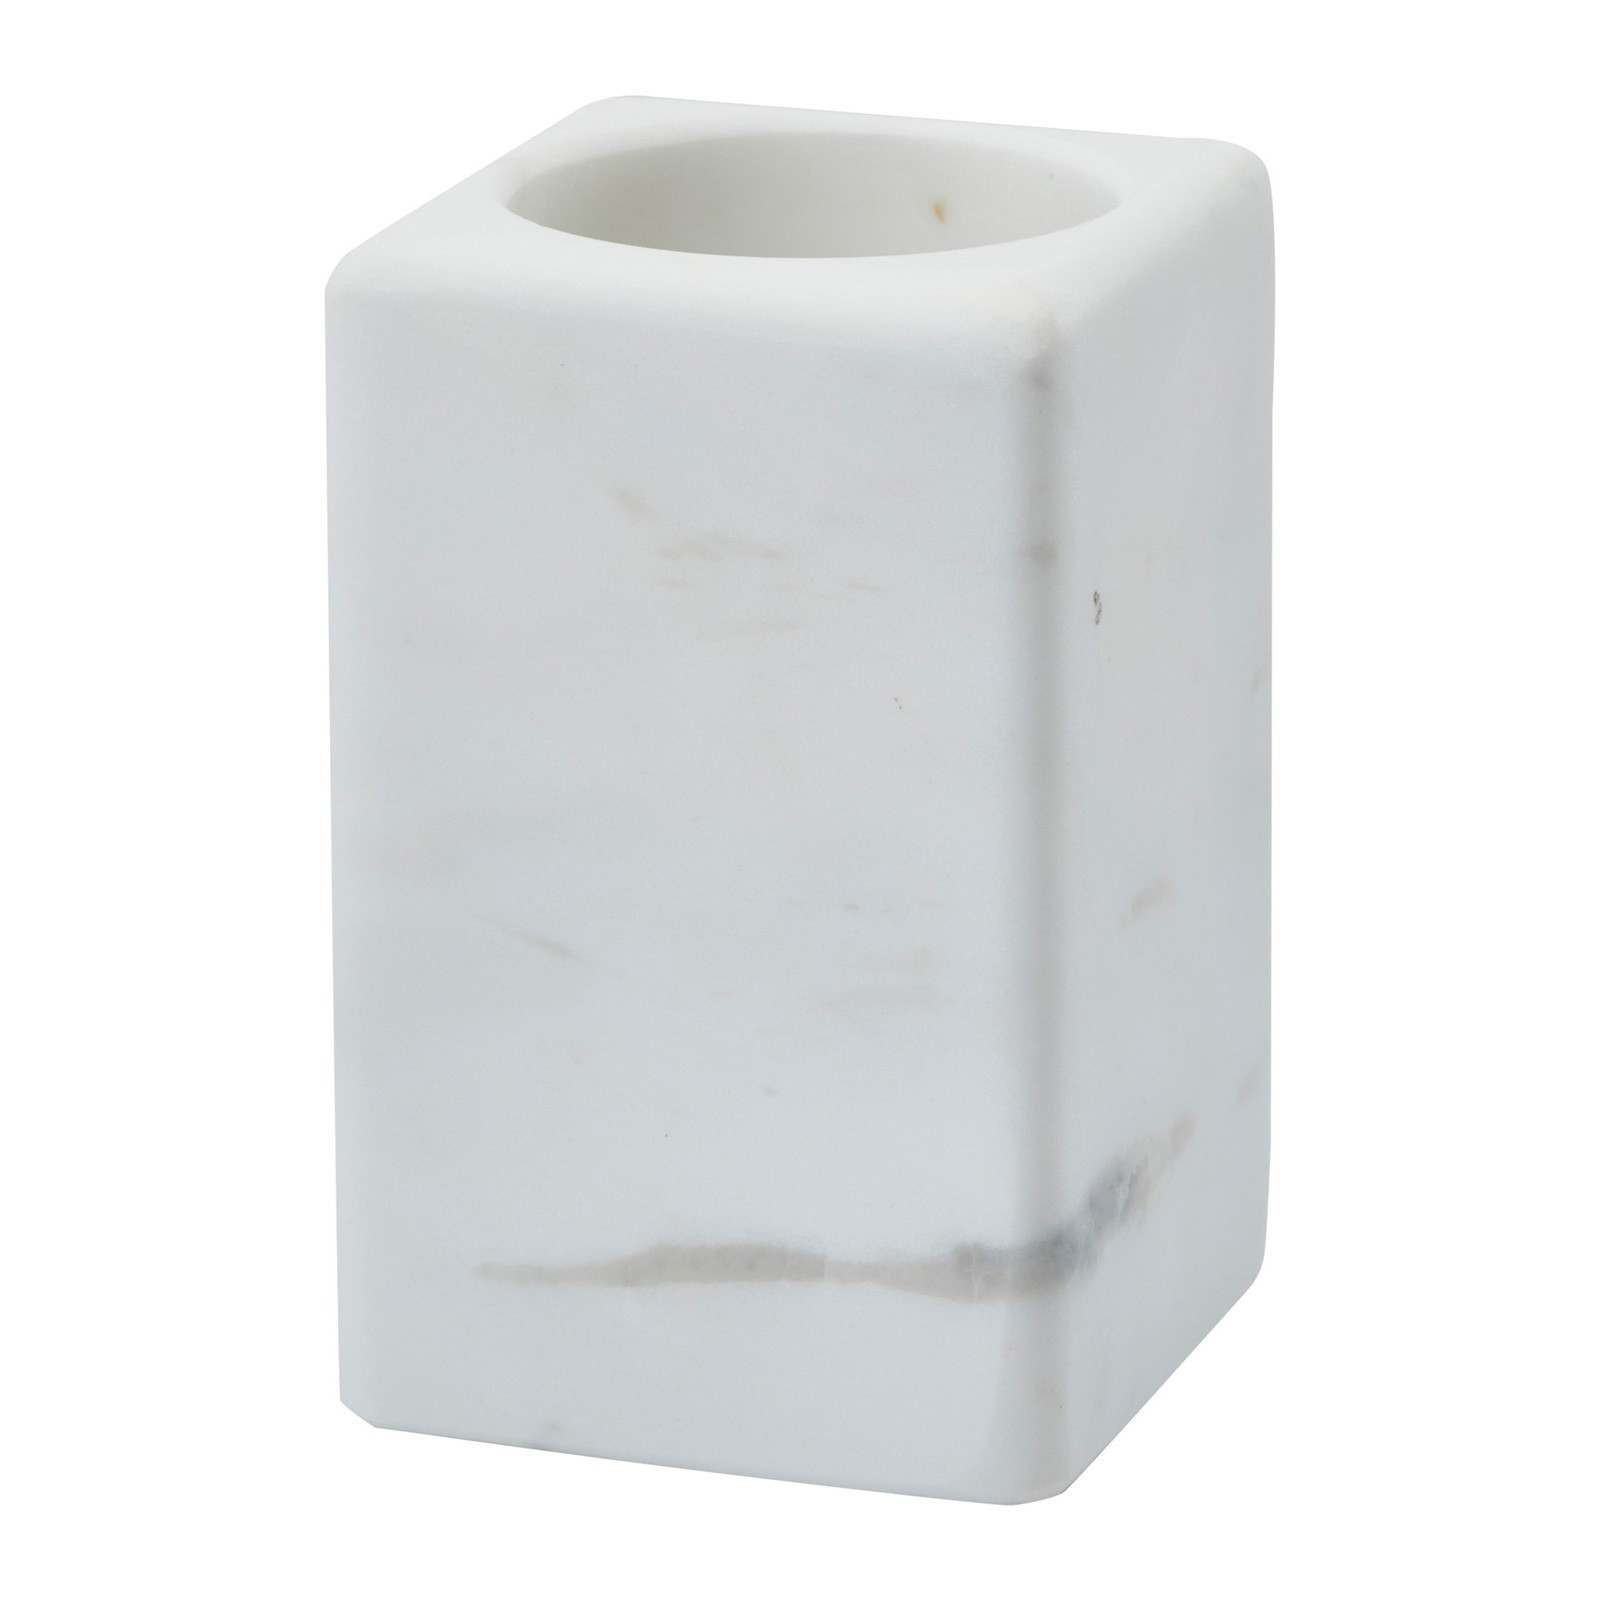 Aquanova Hammam Natural Stone Toothbrush Holder, White